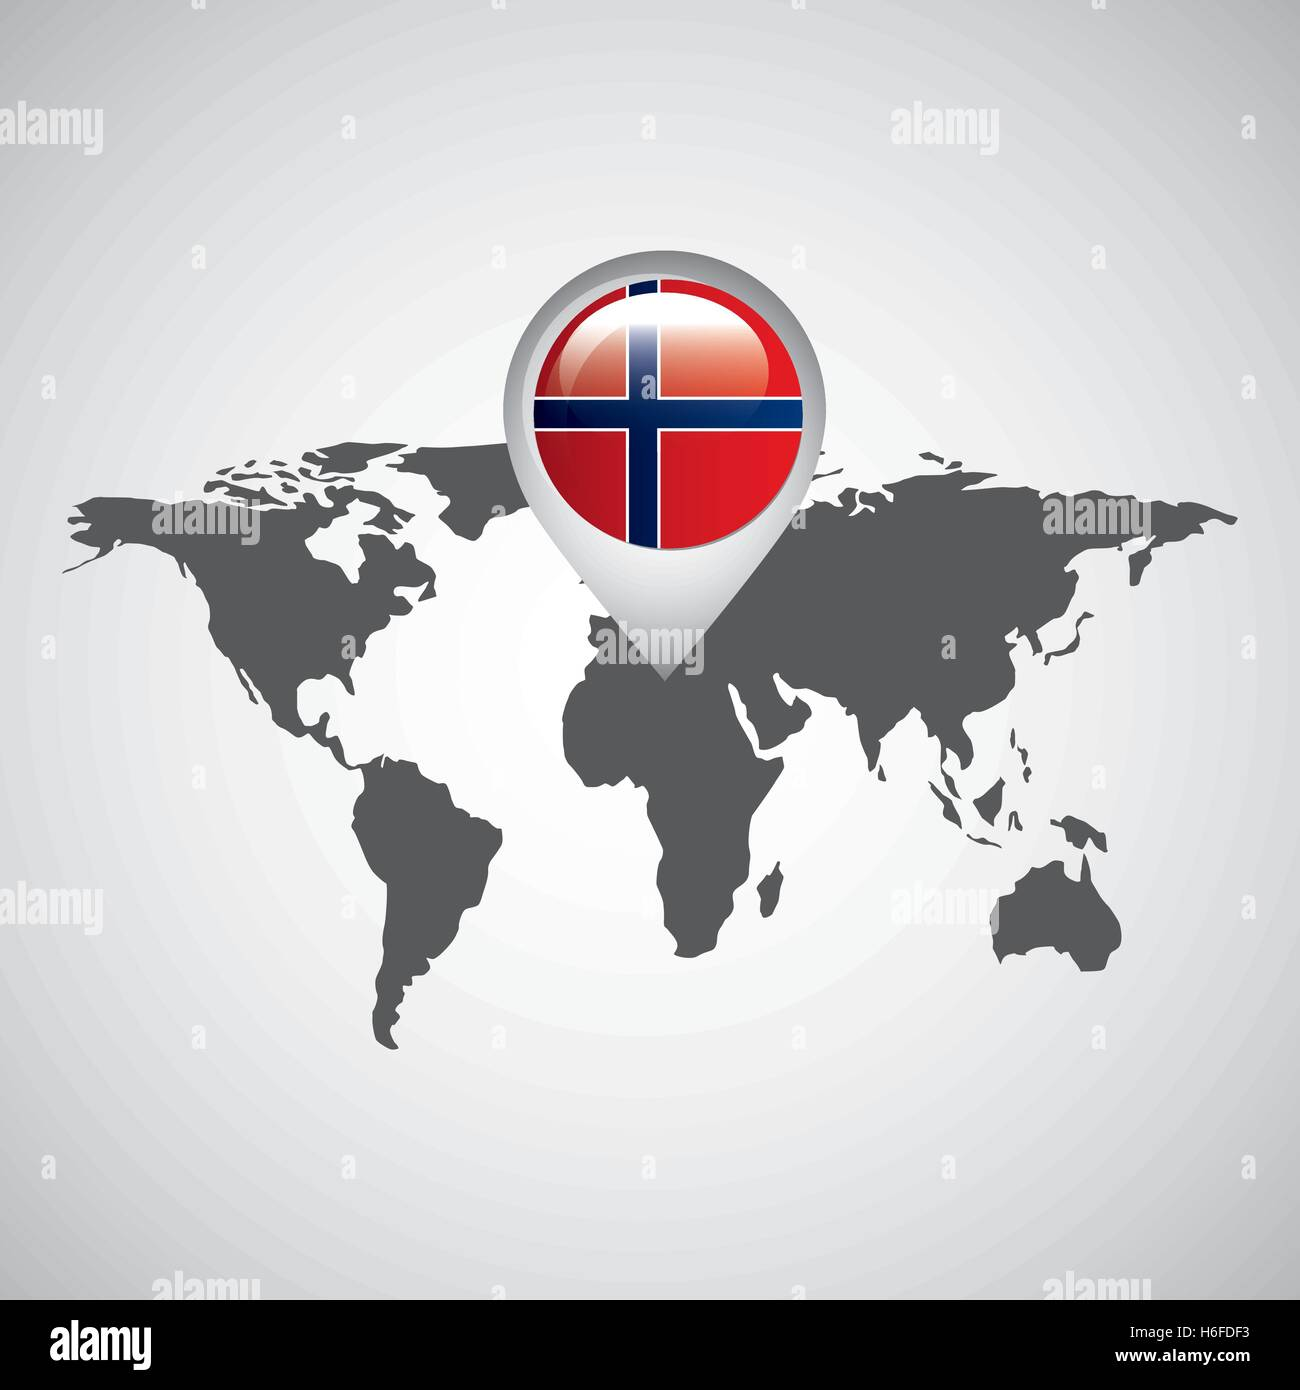 Norway Flag Pin Map Design Icon Vector Illustration Eps Stock - Norway map eps